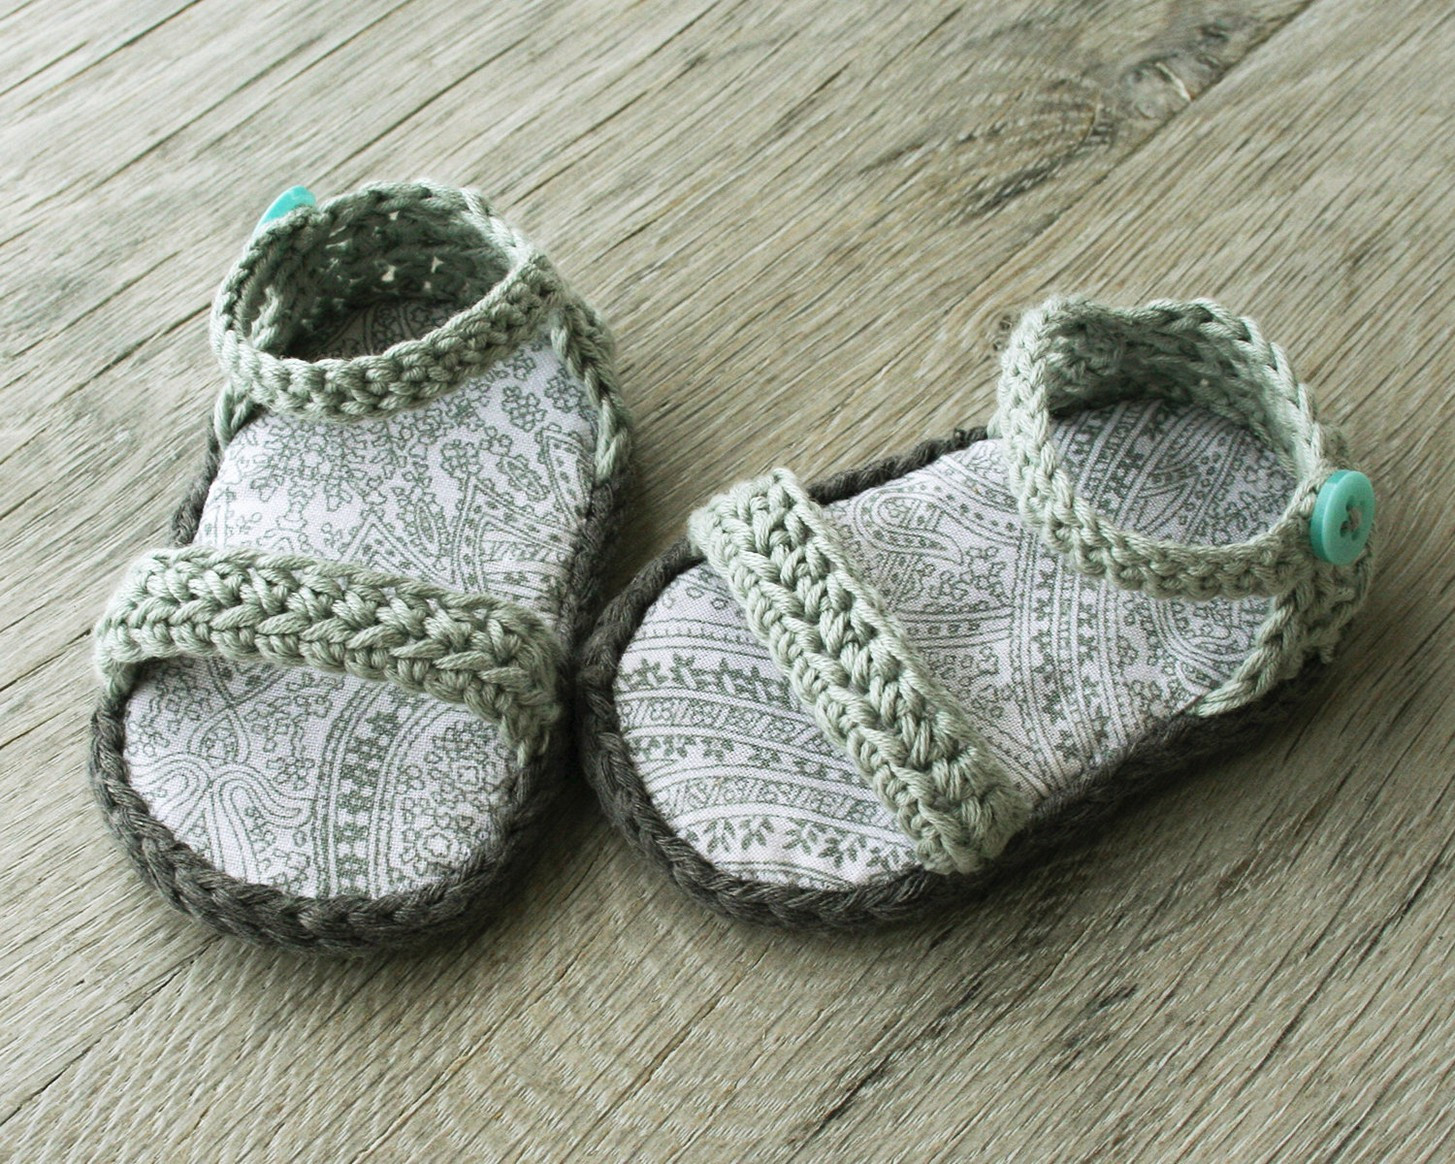 Crochet Baby Sneakers Lovely Baby Crochet Sandals Several Pieces Of Ideas You Can Try Of Superb 49 Images Crochet Baby Sneakers